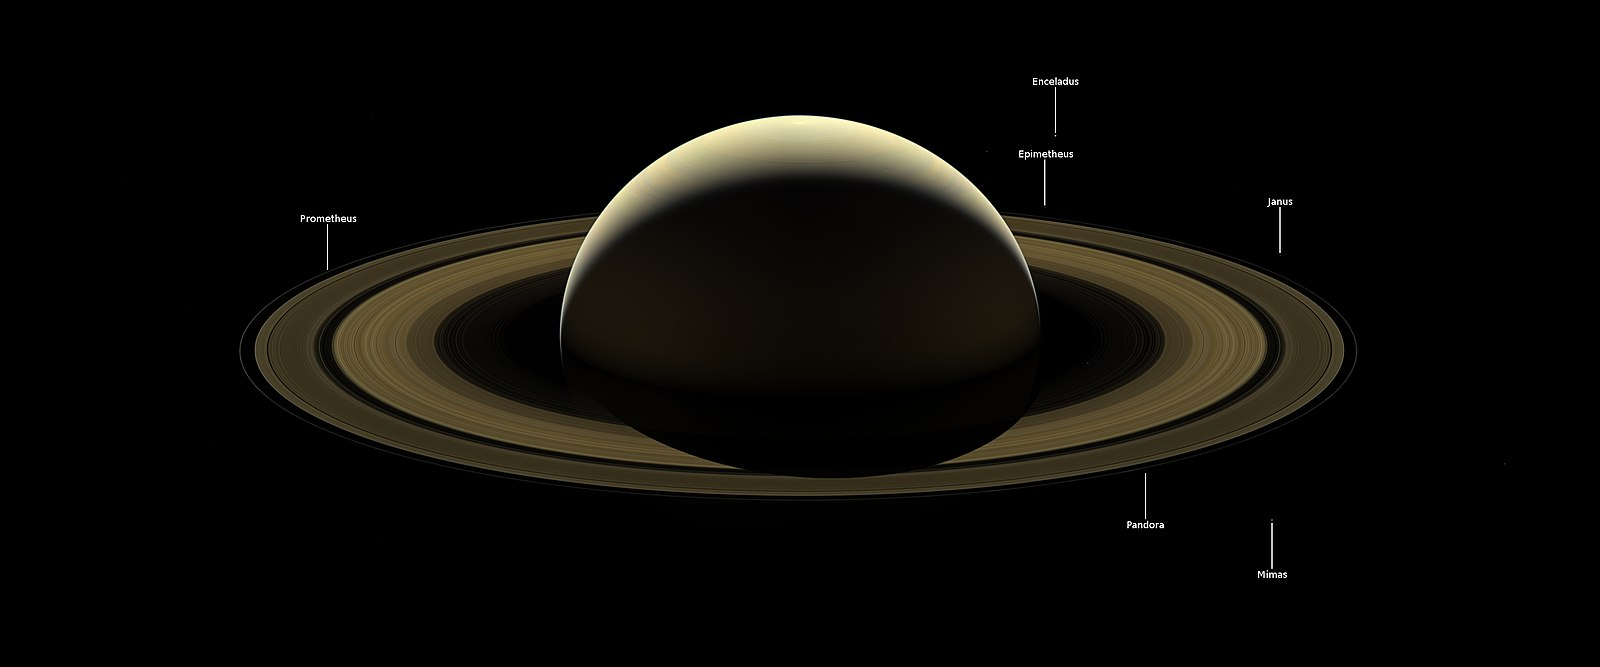 data collected saturns giant - HD6000×2500